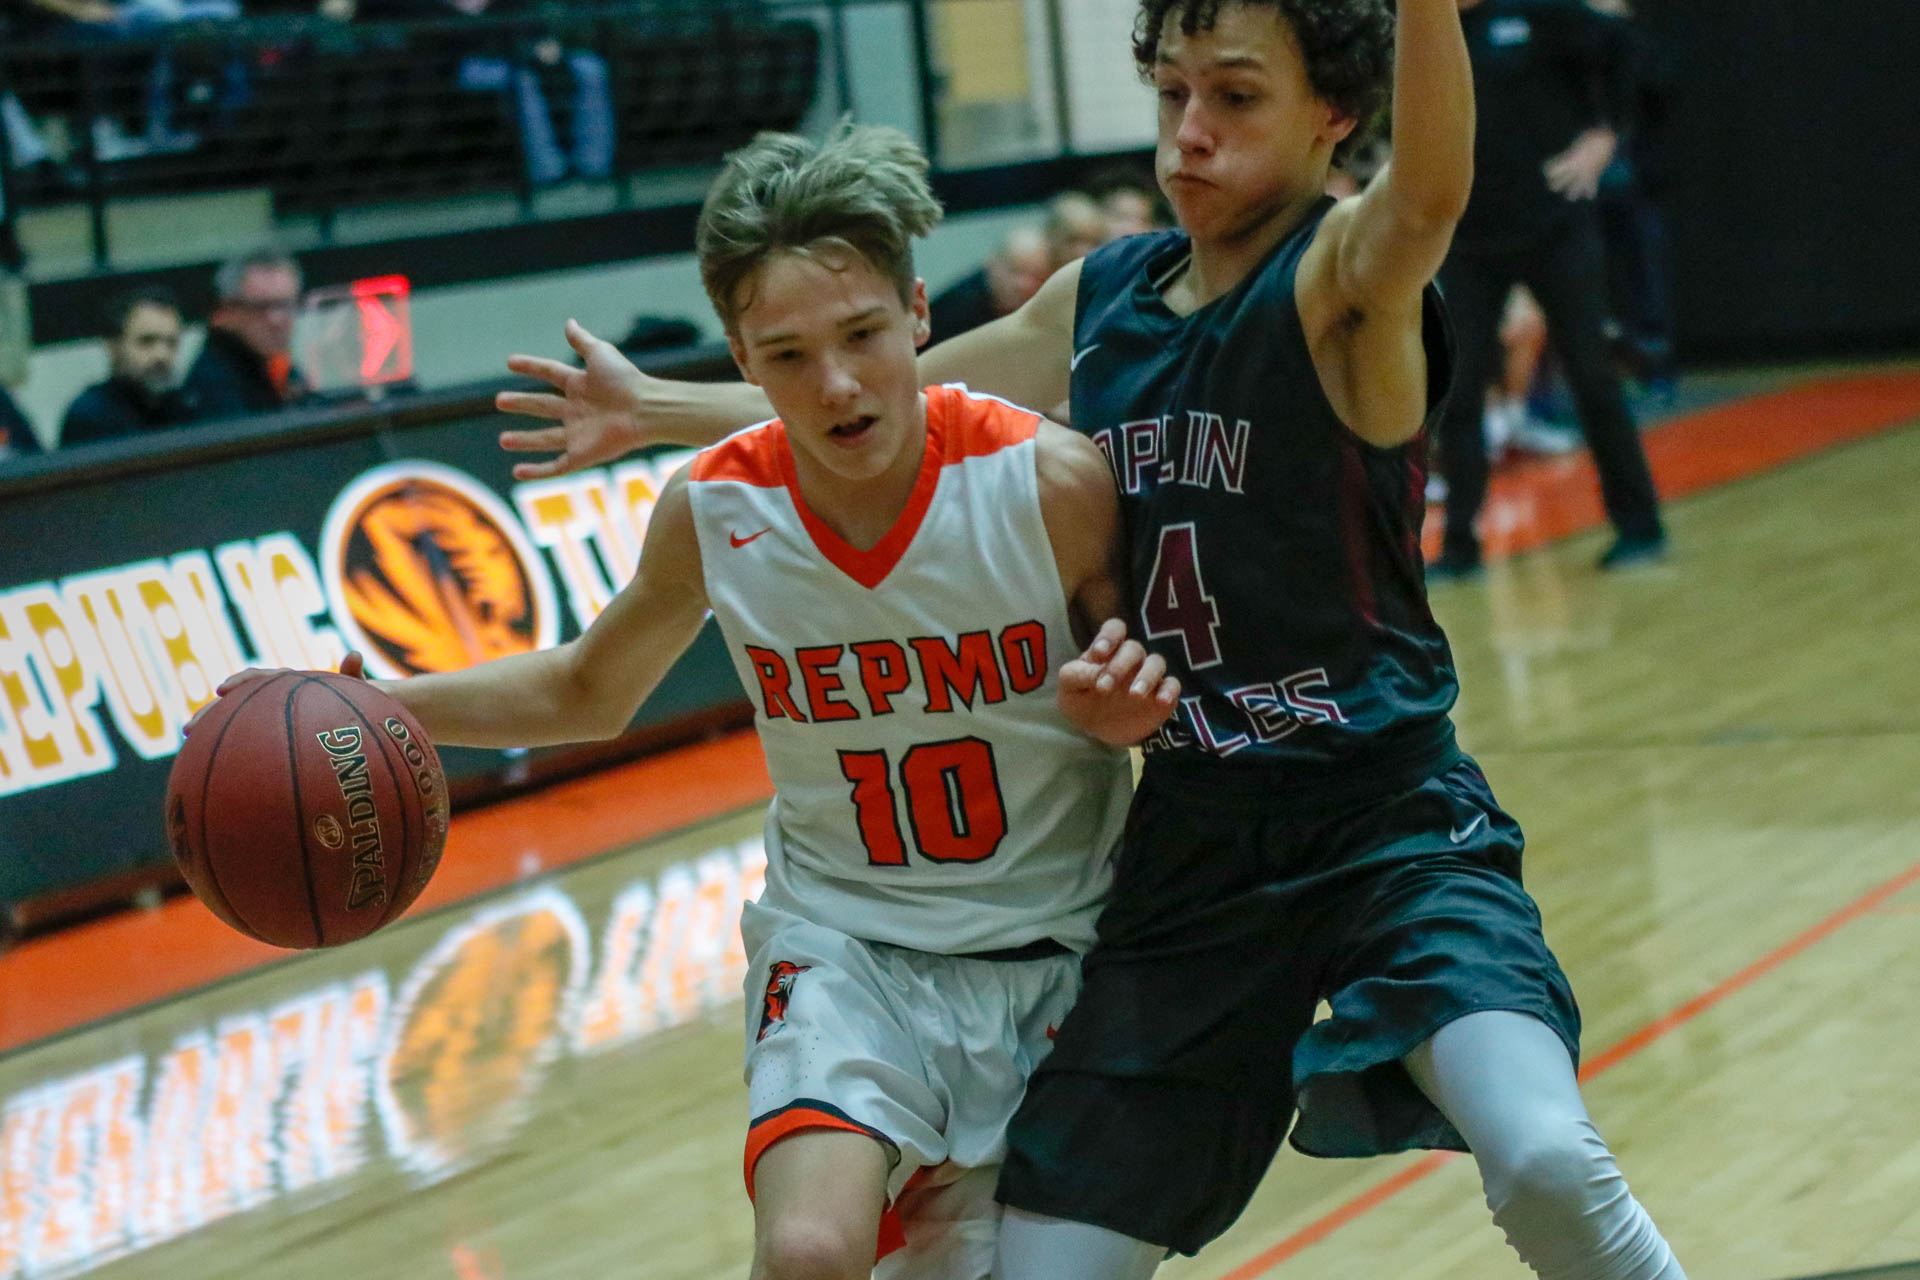 Tigers Push Past Eagles For Courtwarming Win